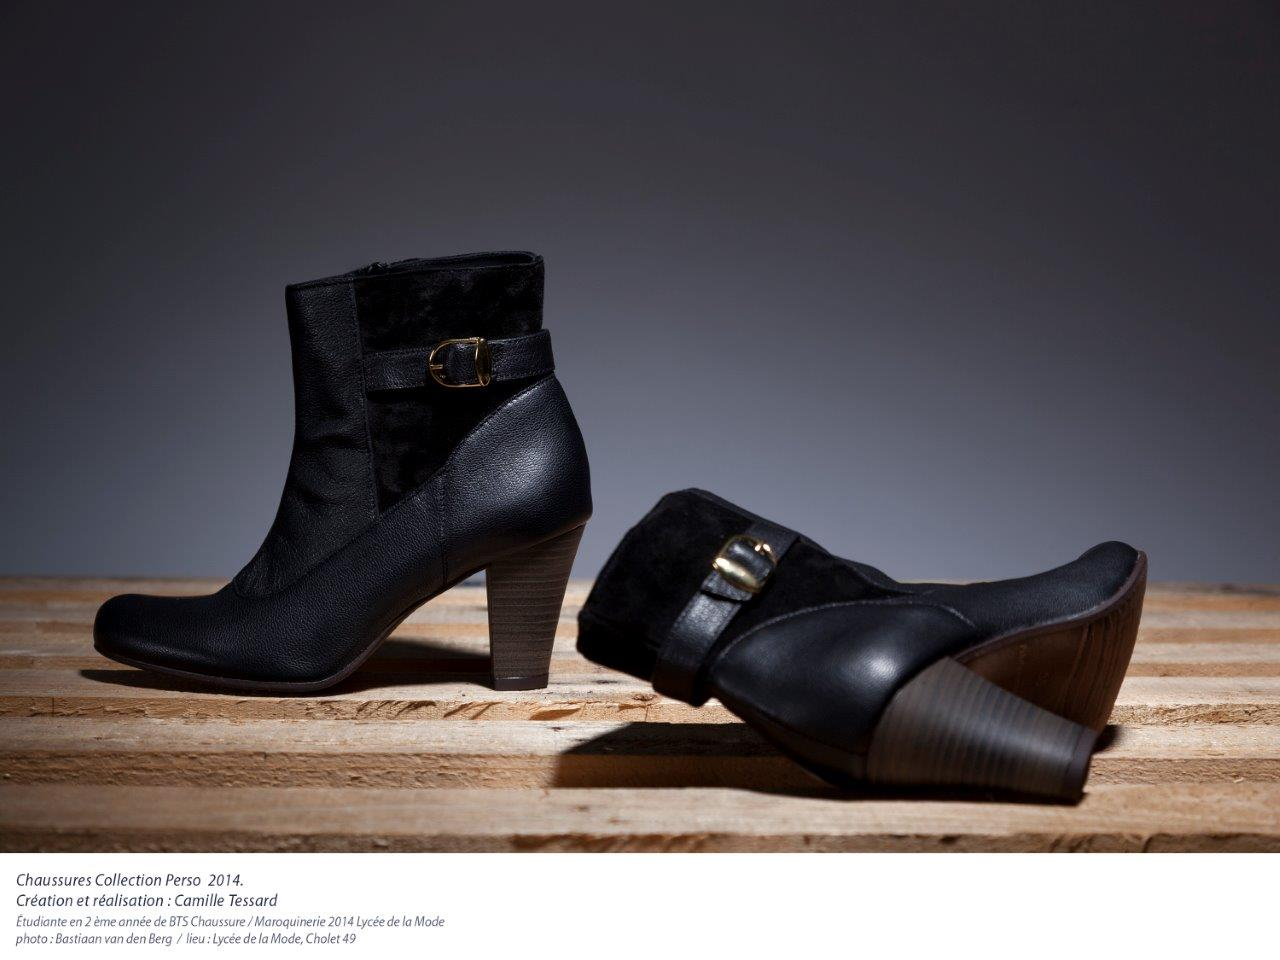 2014 Chaussures Coll. Perso-08